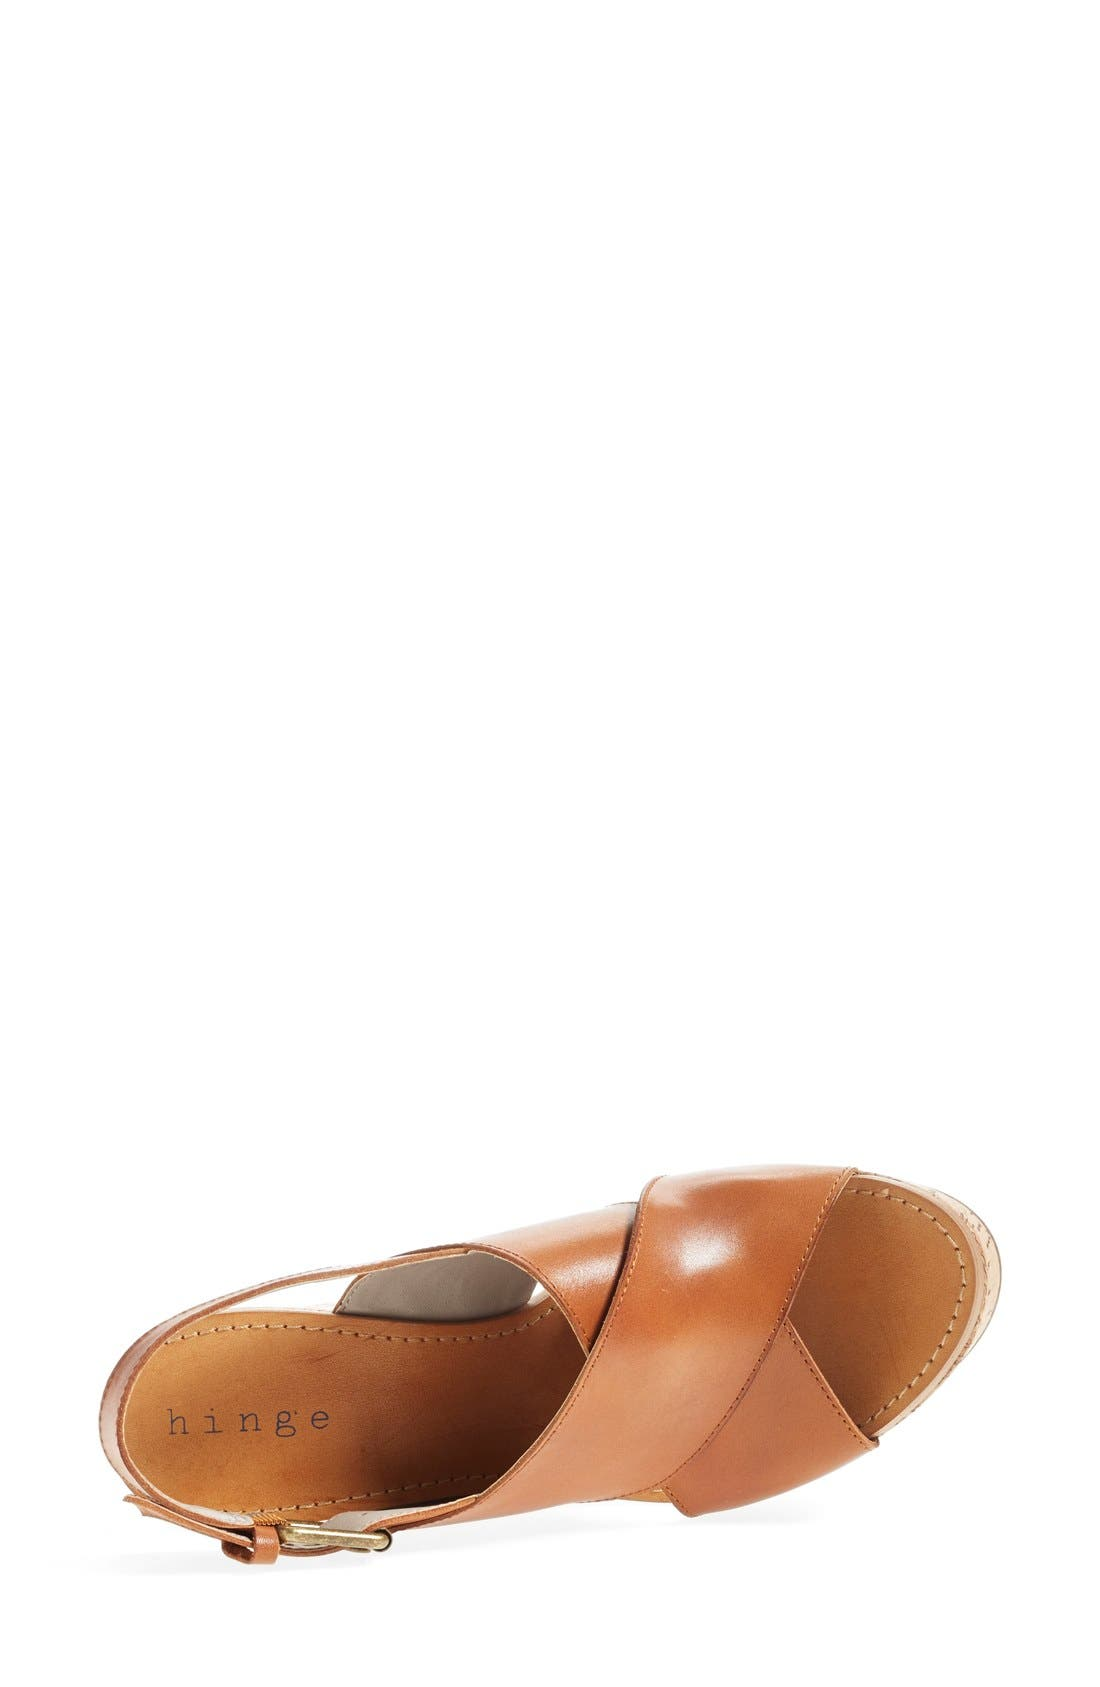 Alternate Image 3  - Hinge 'Hannah' Wedge Sandal (Women)